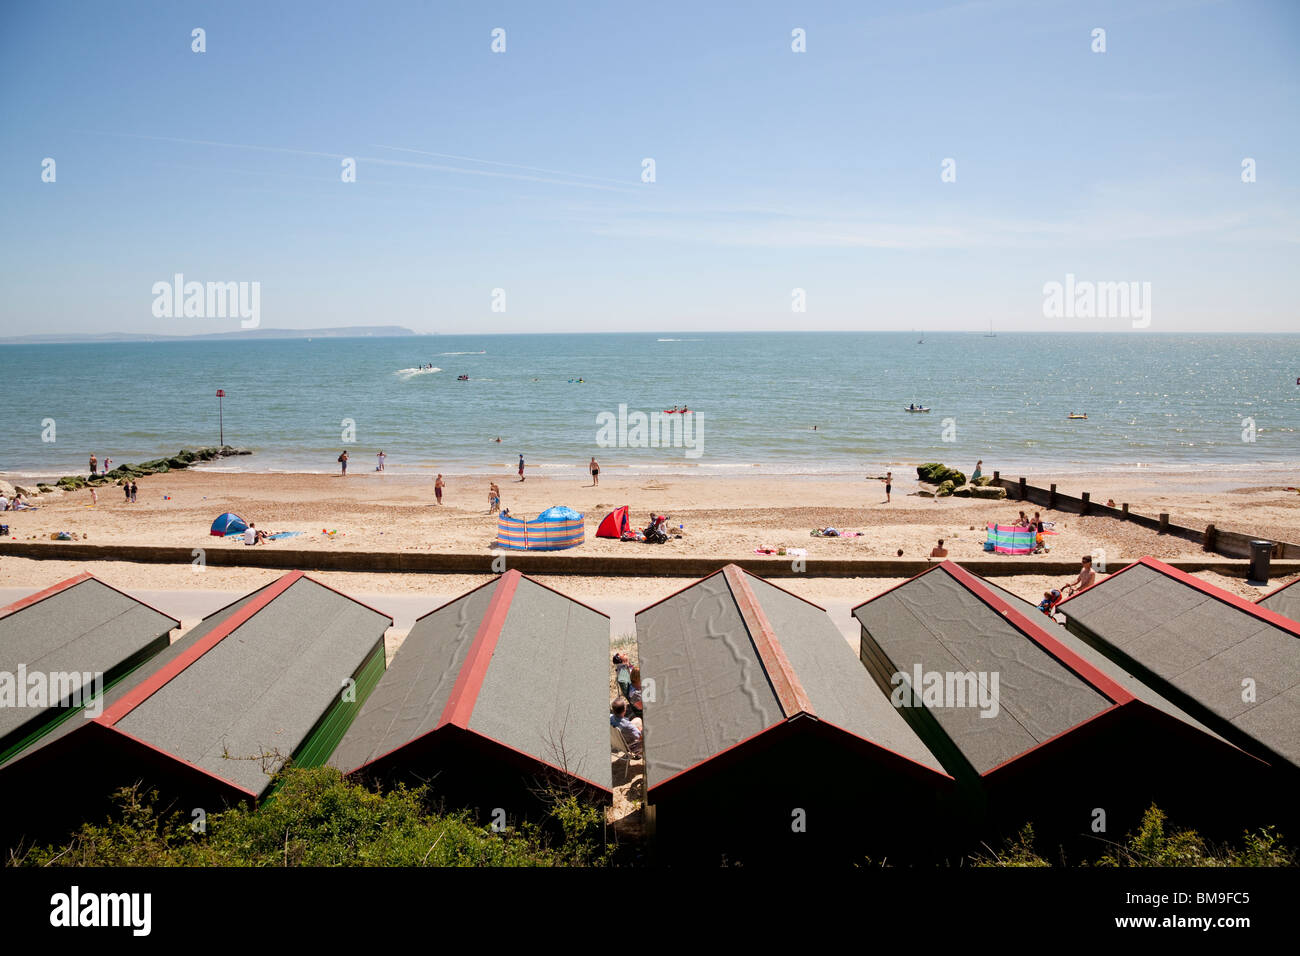 looking over beach hut roofs towards beach and sea at Mudeford - Stock Image